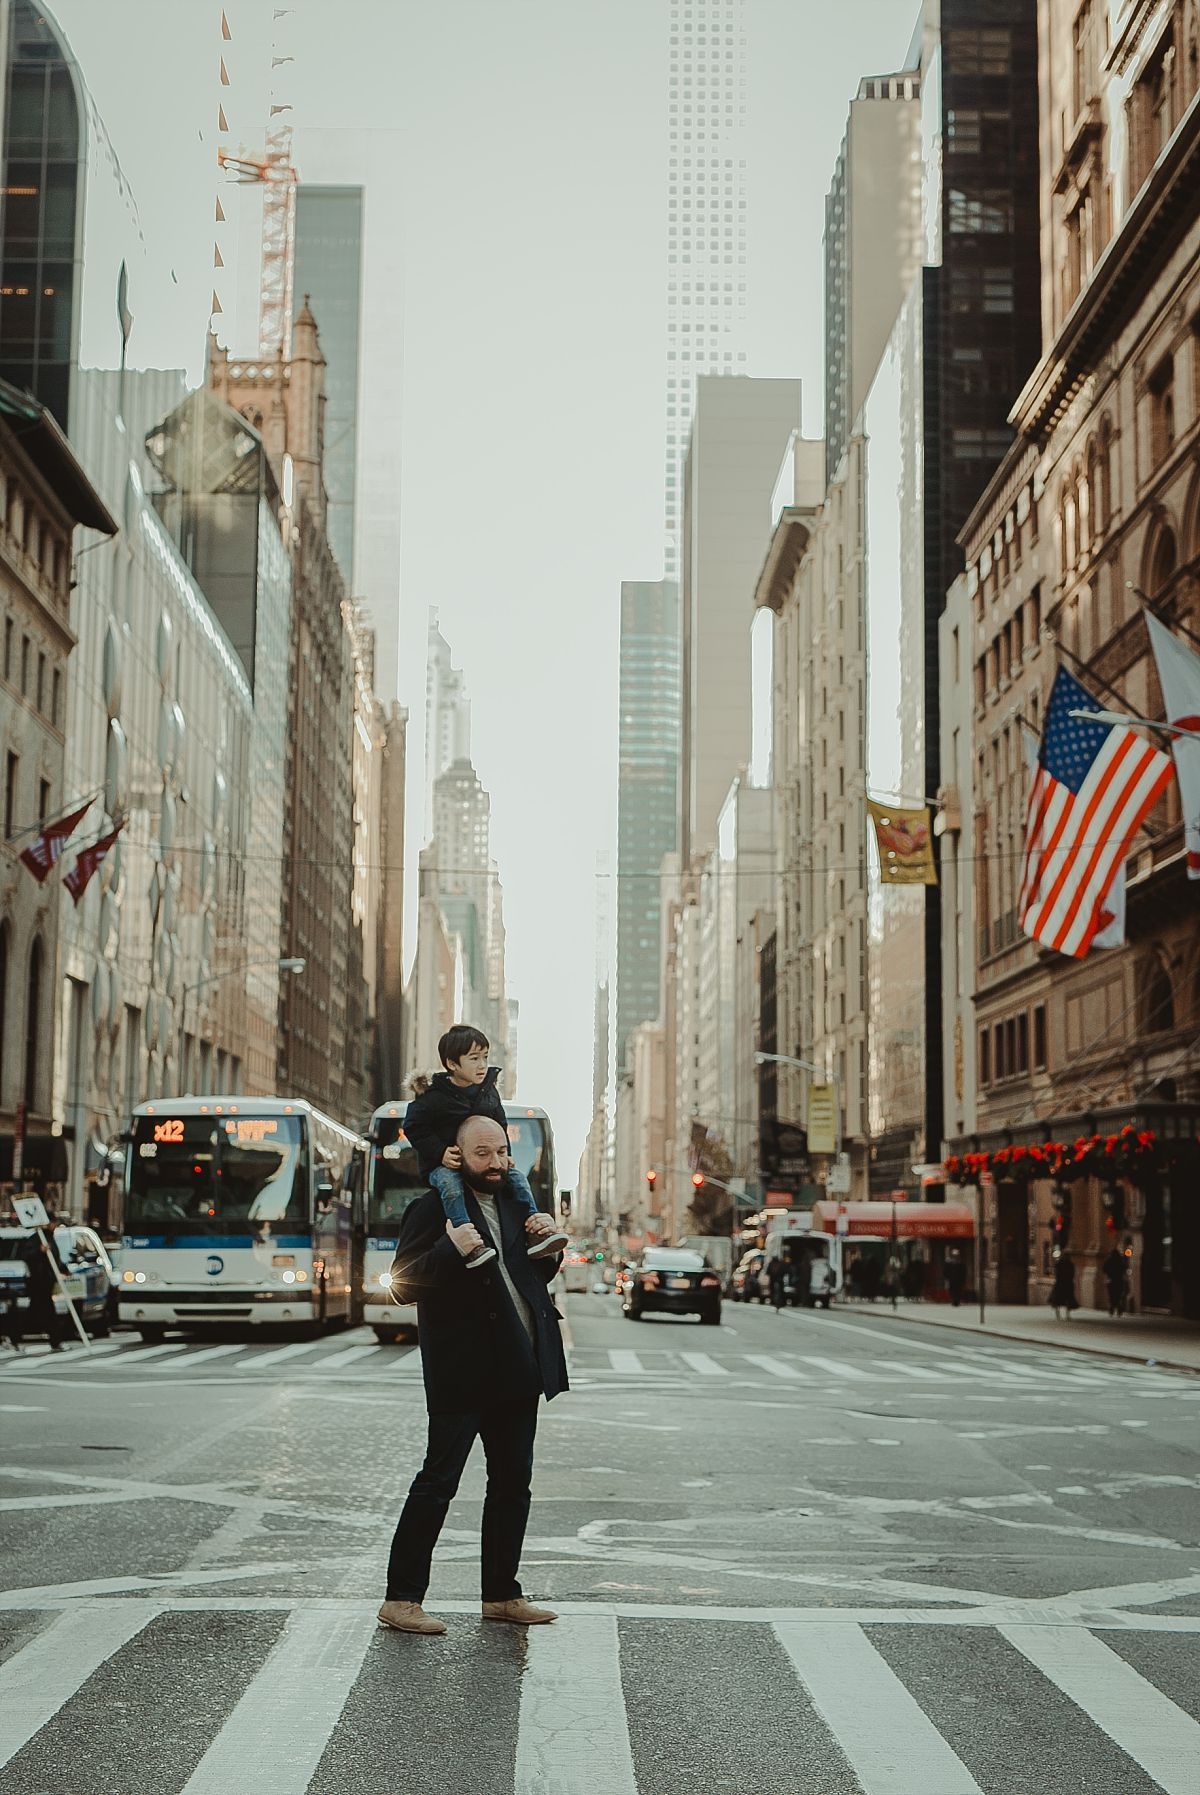 dad and son walking the streets of midtown with skyscraper buildings in the background. image taken by photographer krystil mcdowall